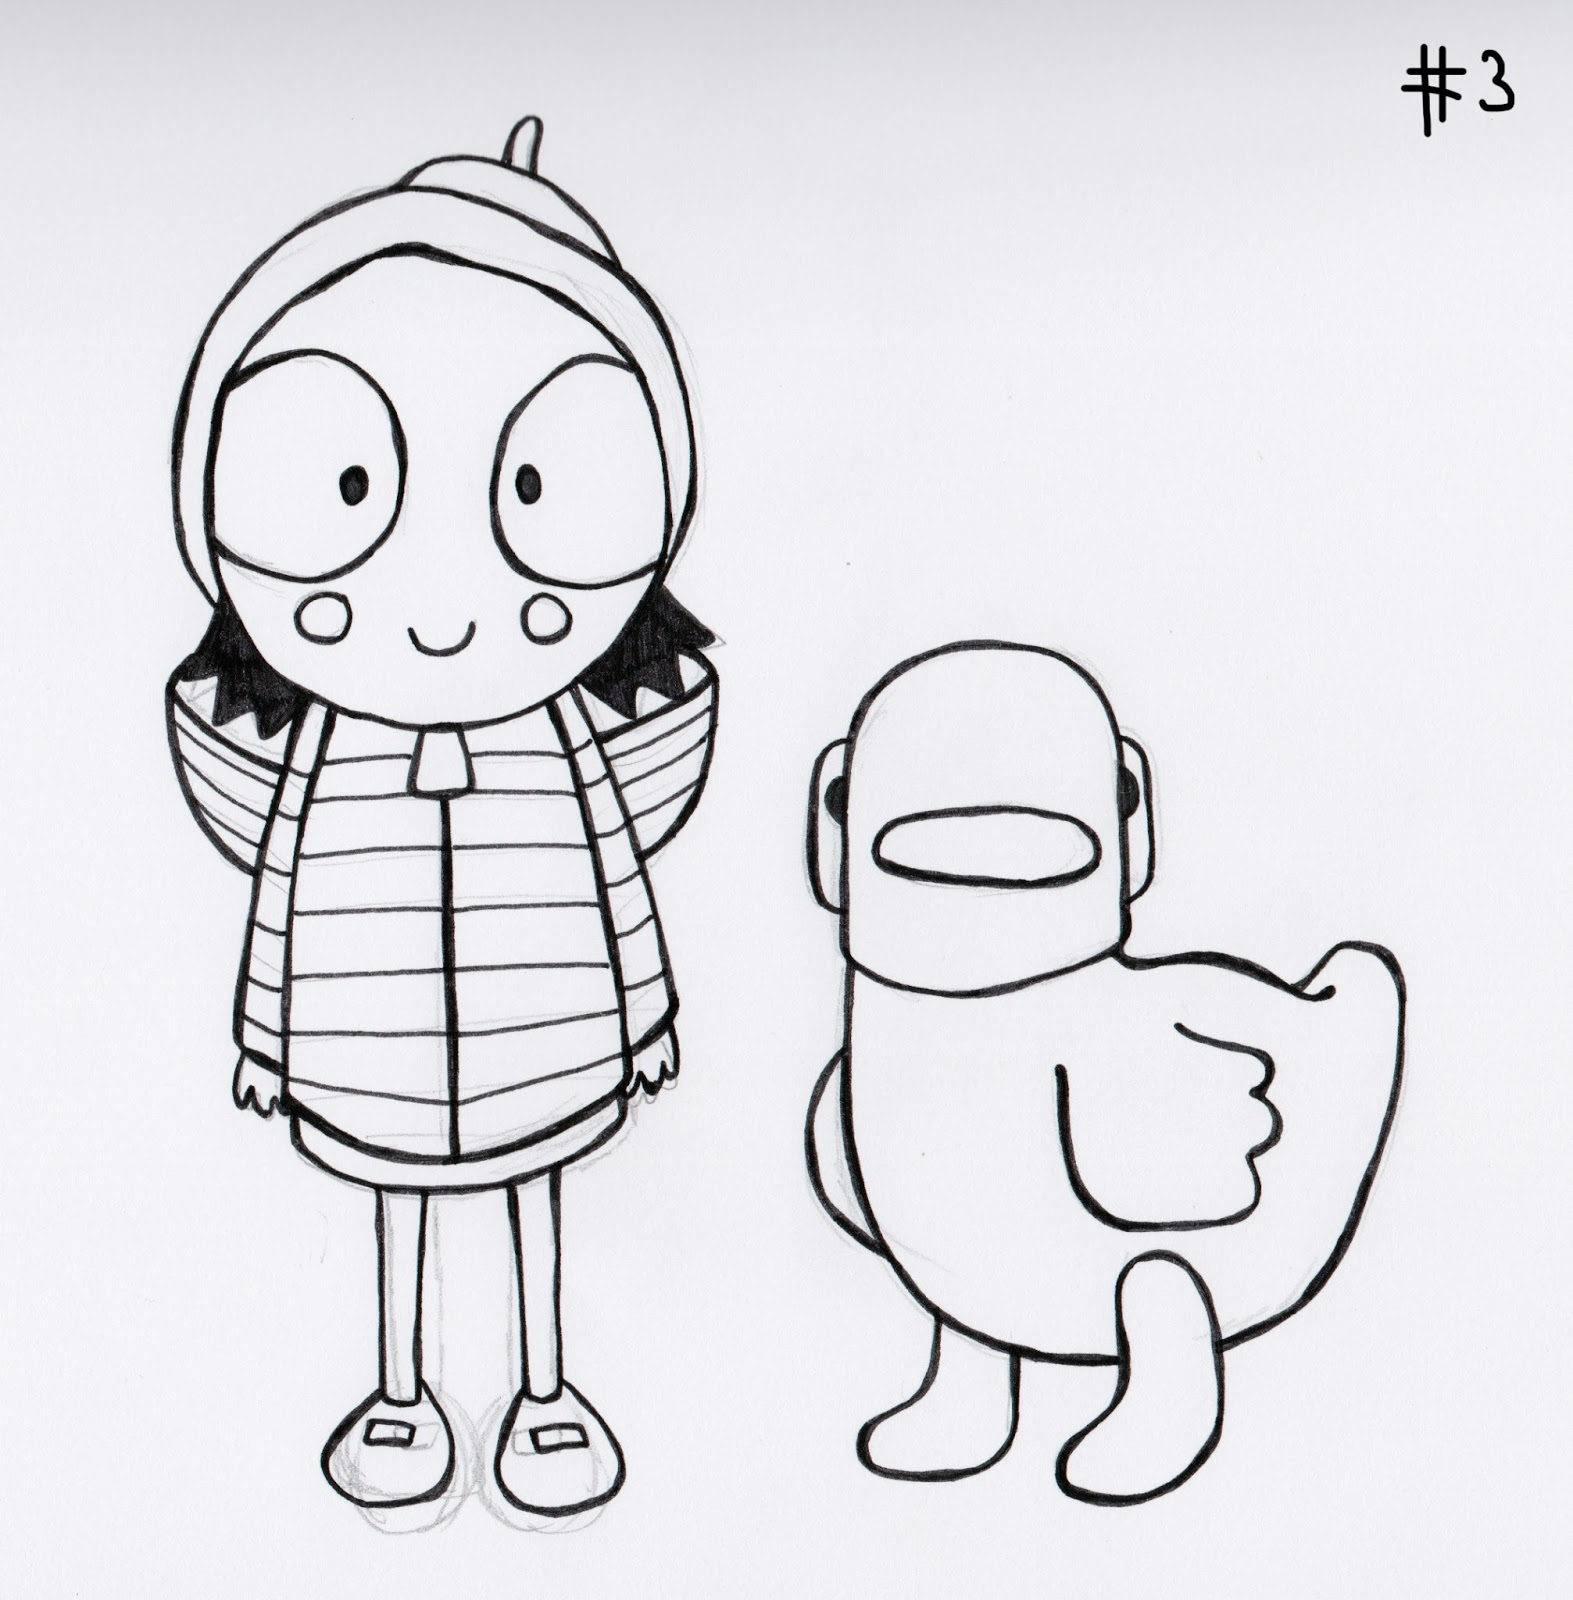 sarah and duck coloring pages - photo#8